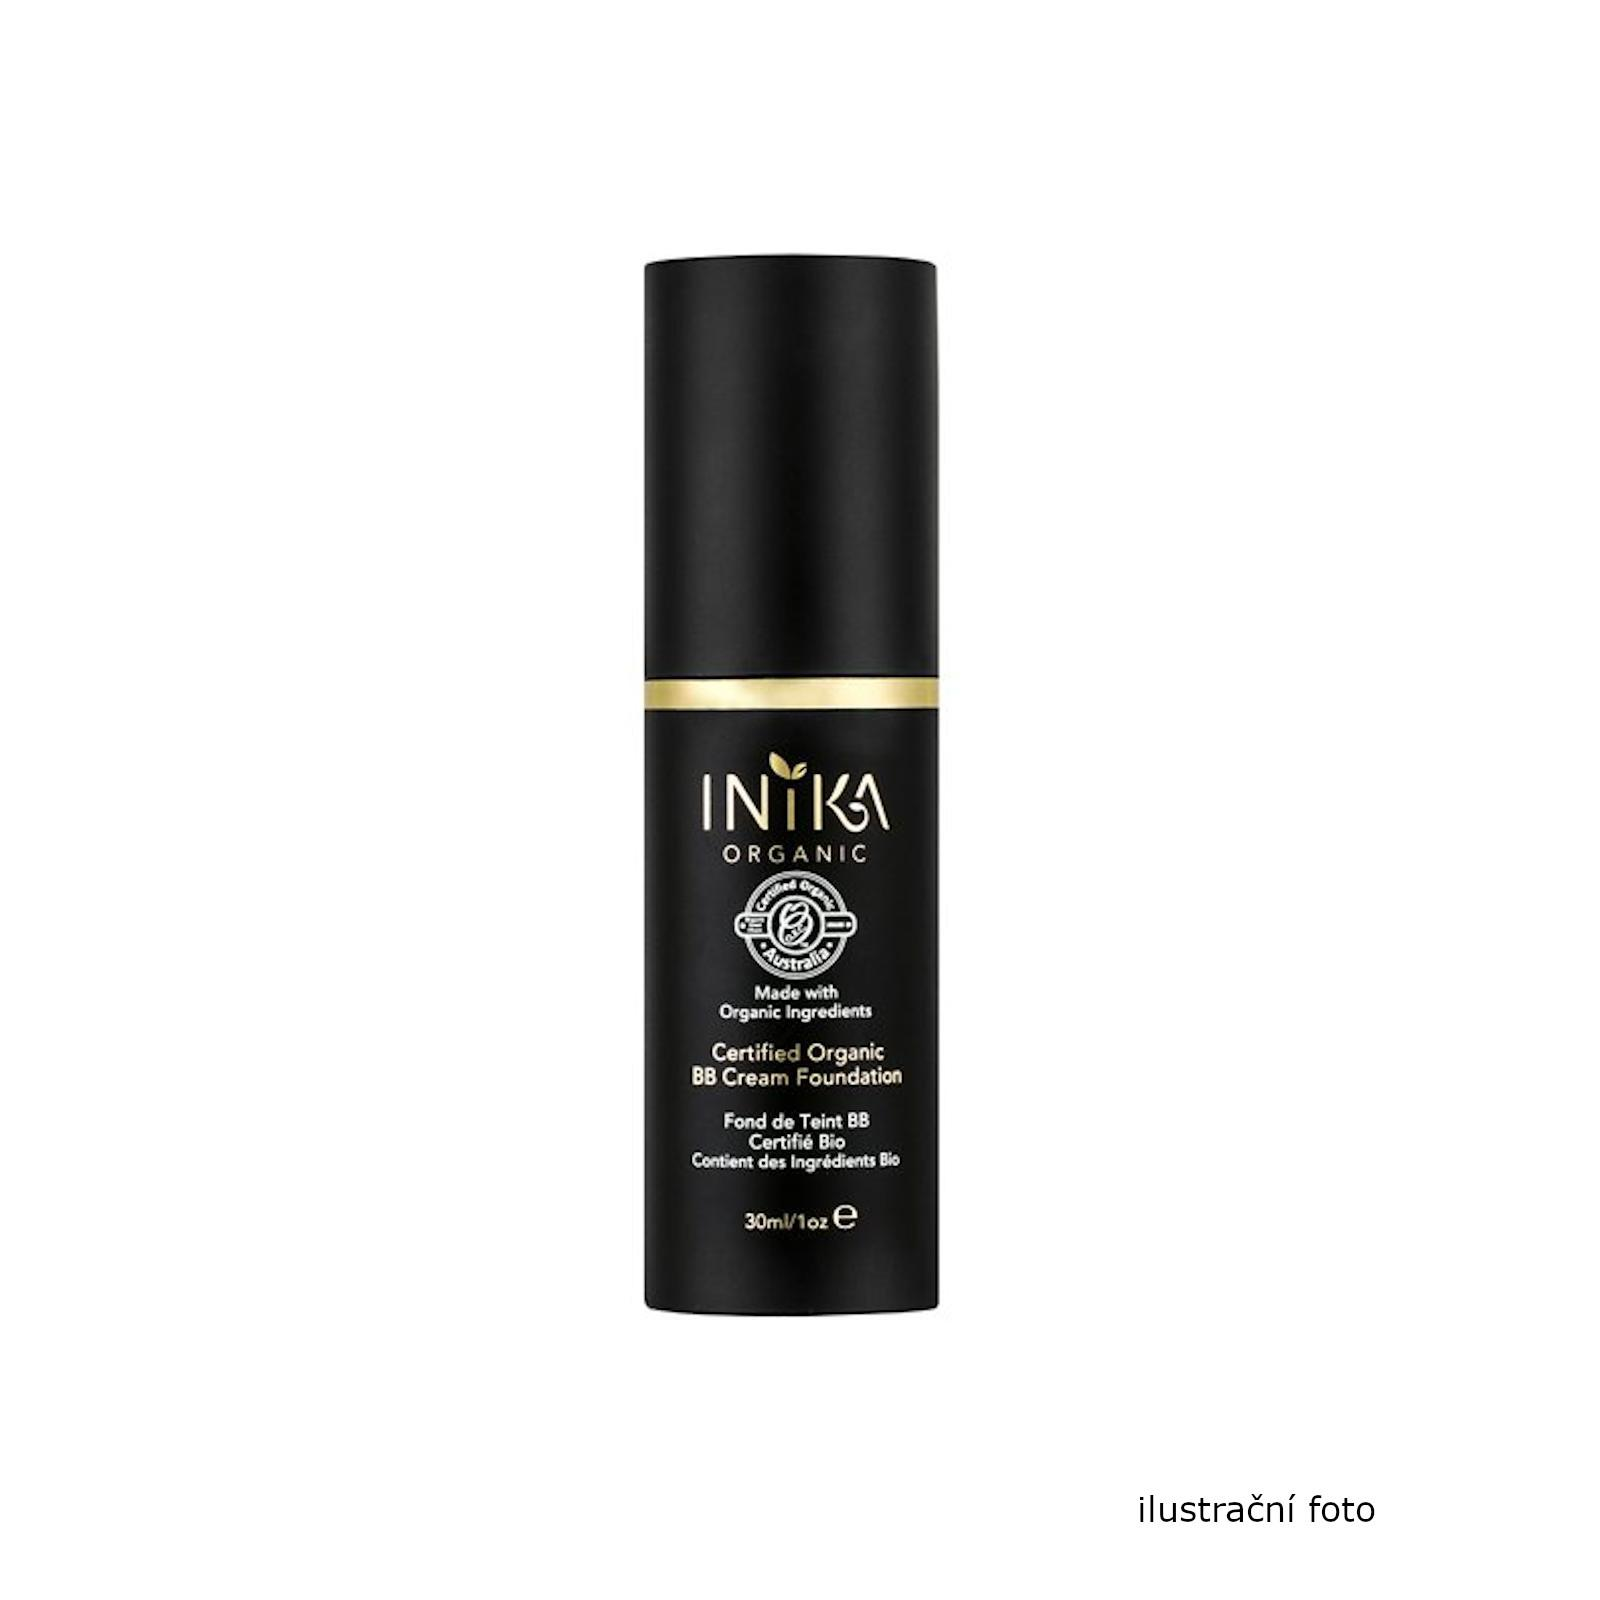 Inika Organic BB krém, Honey 4 ml